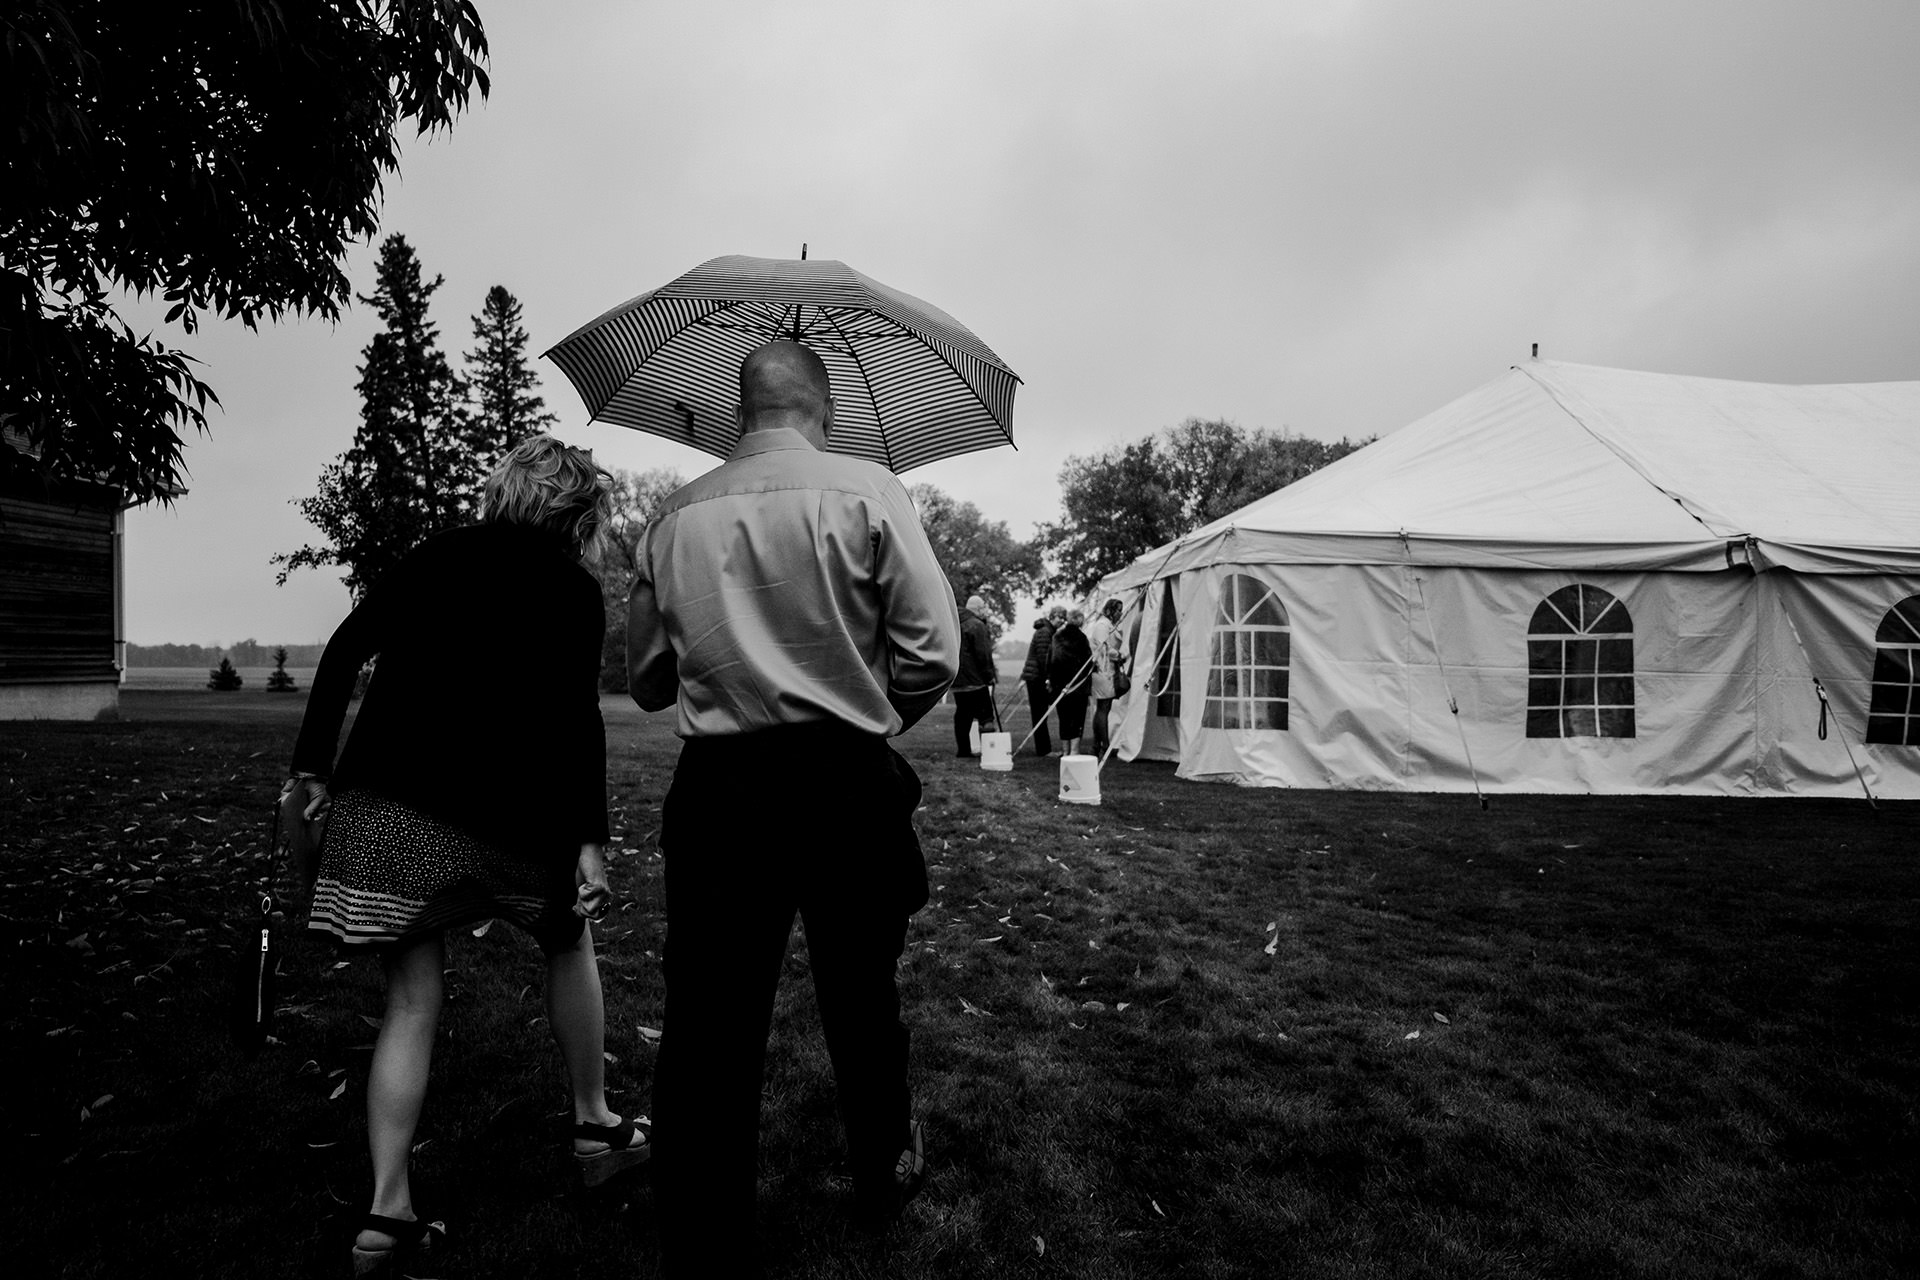 0009-balmoral-manitoba-tent-wedding-stephanie-ryan.jpg